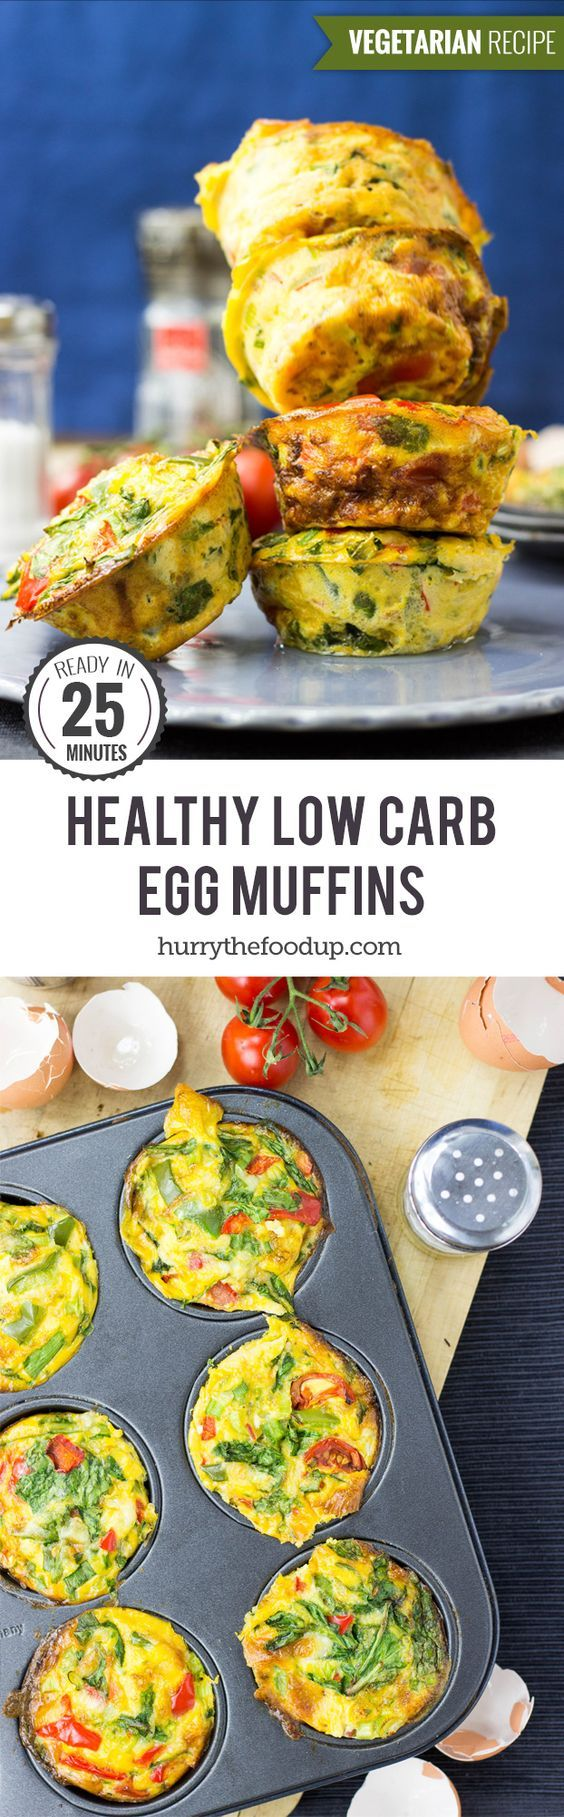 Egg Breakfast Muffins | 8 Make-Ahead Breakfasts for Busy Mornings | http://www.hercampus.com/health/food/8-make-ahead-breakfasts-busy-mornings